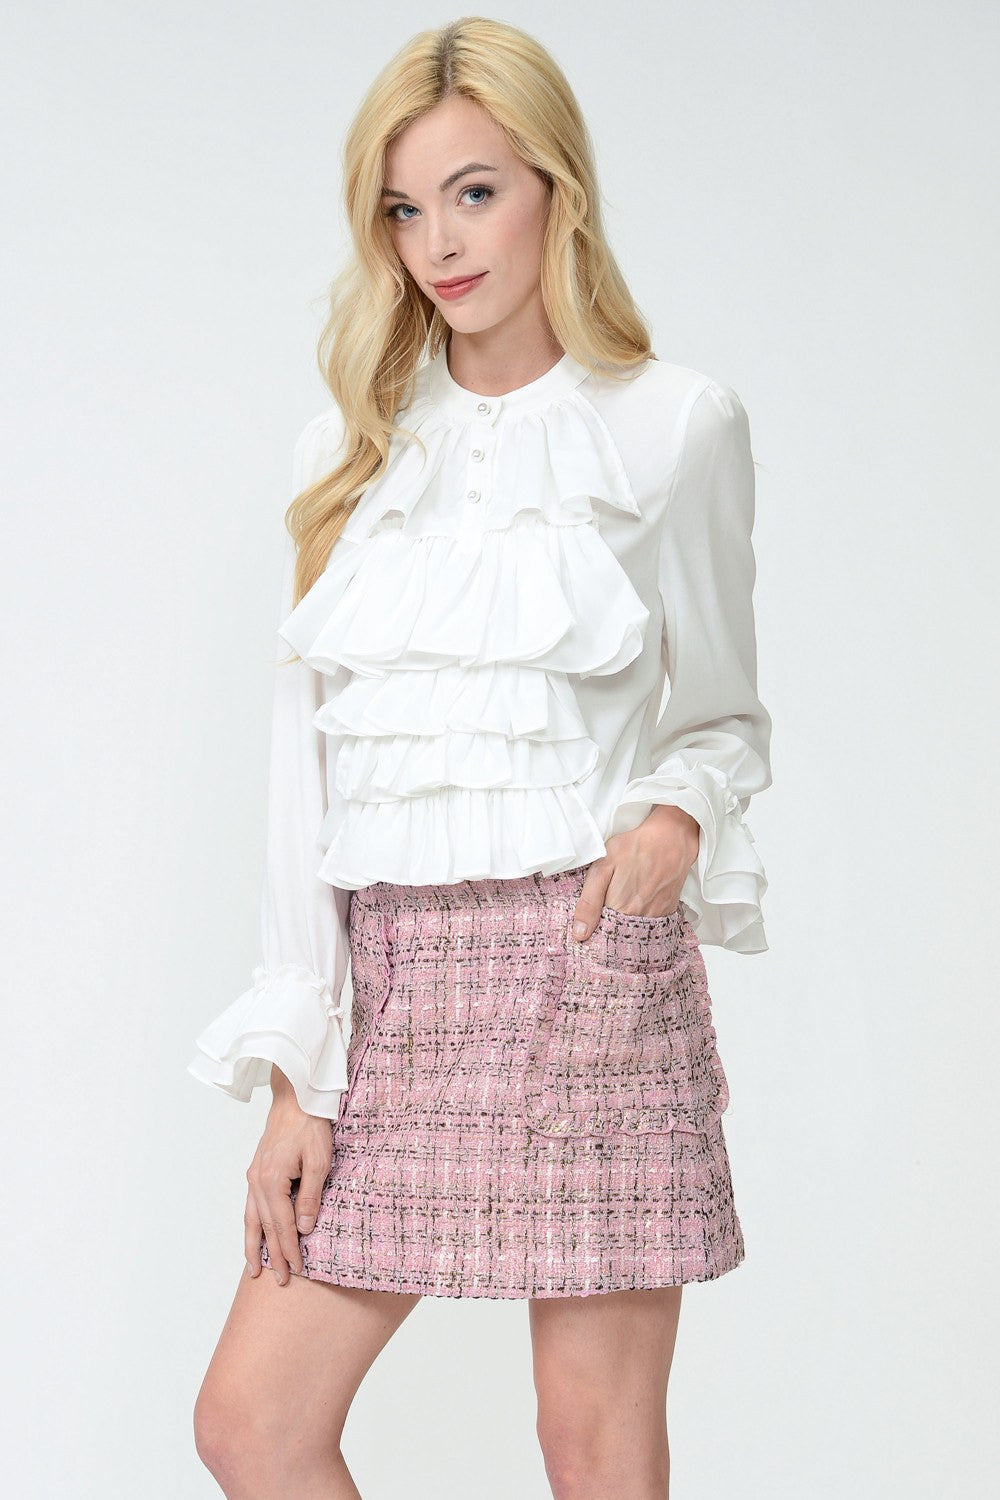 Horowitz Tweed Skirt by Sister Jane